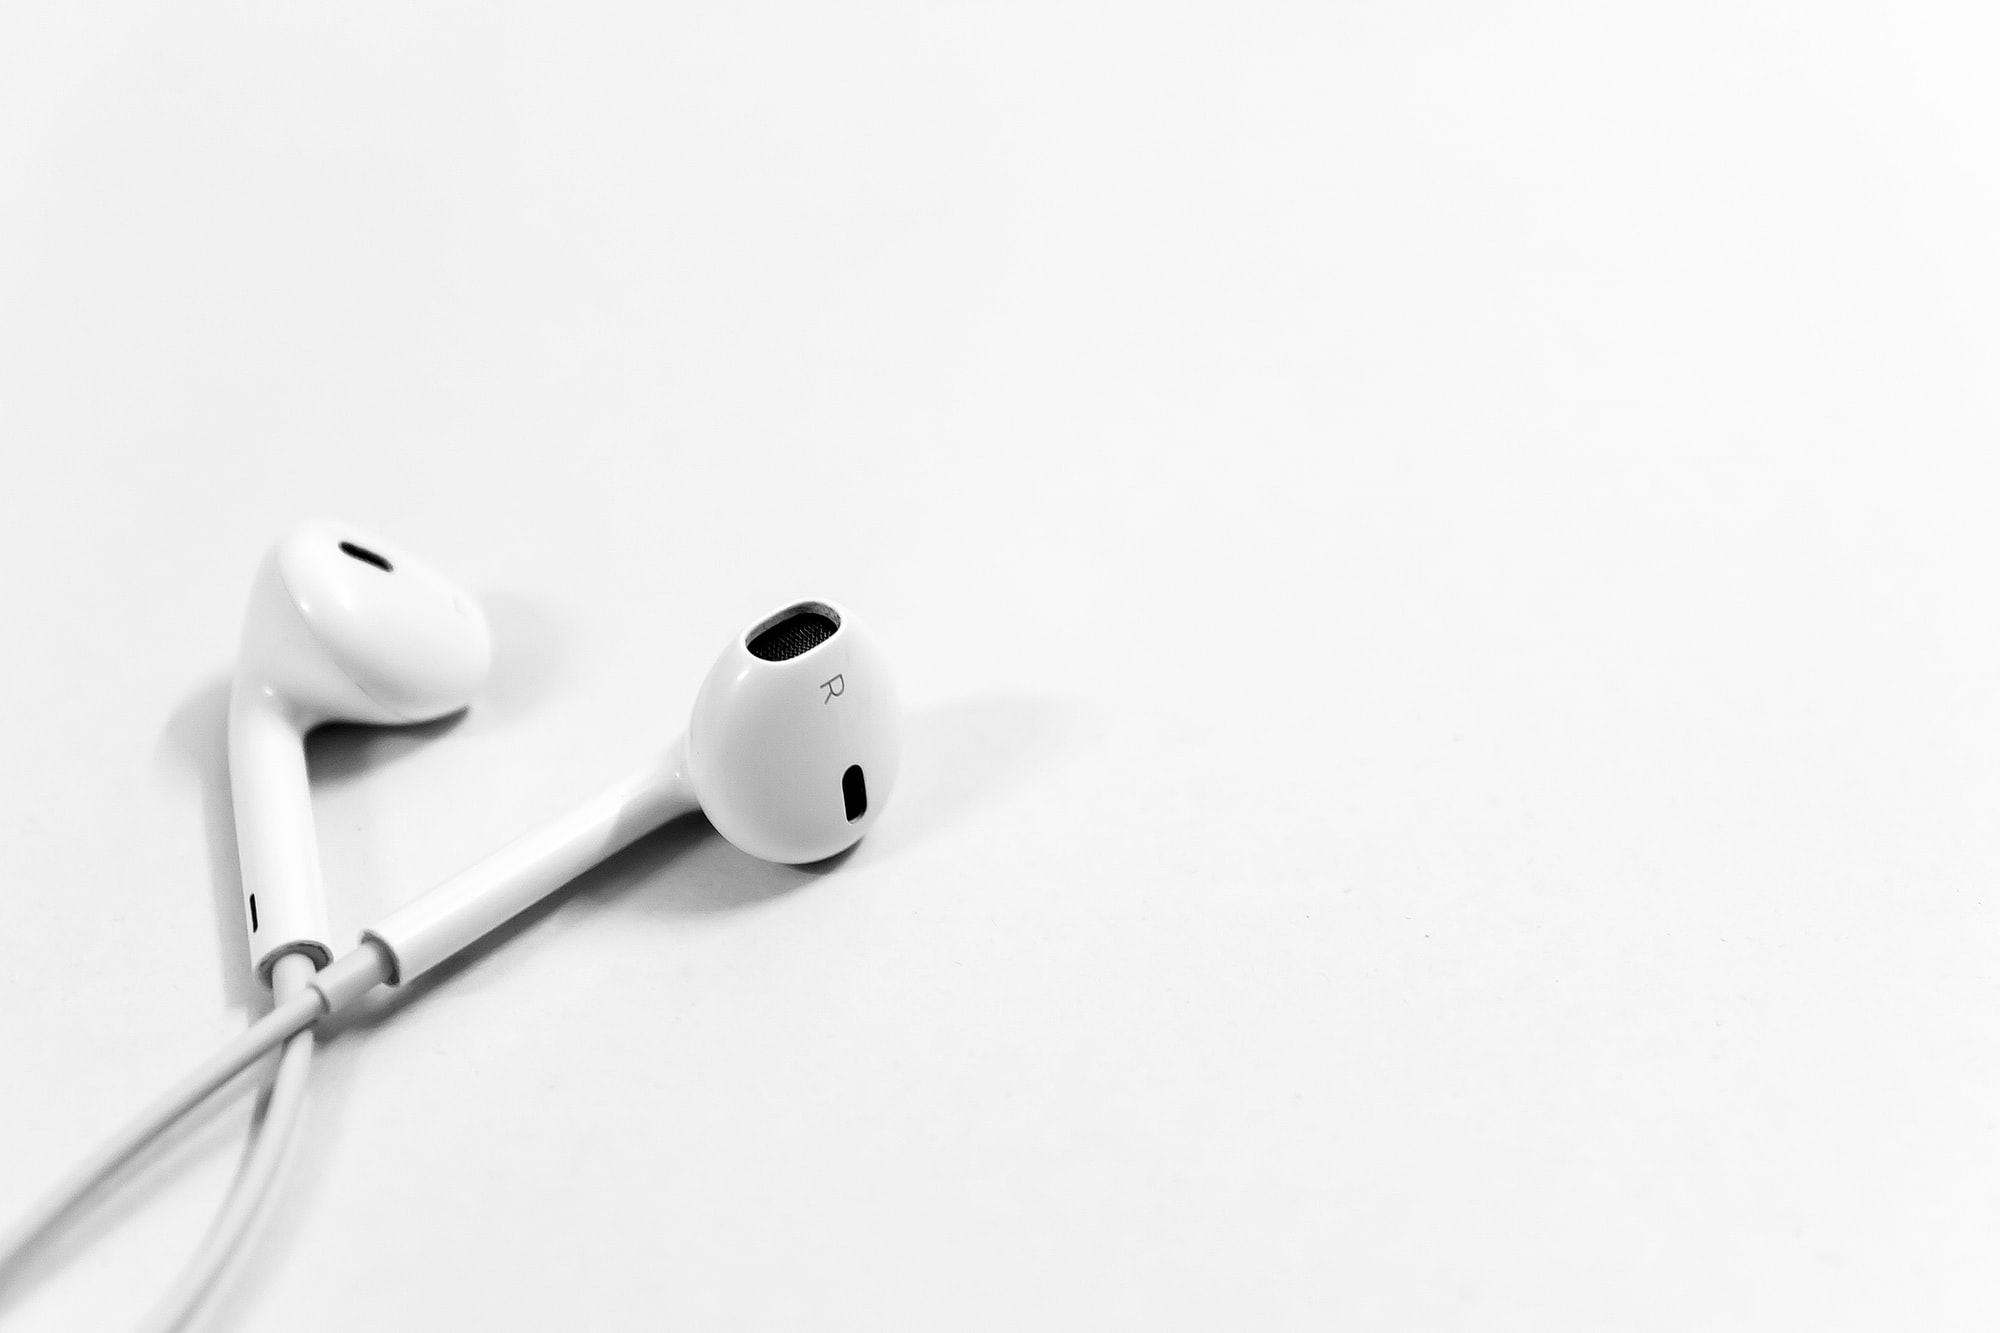 Stock Photo of Apple earphones by rupixen